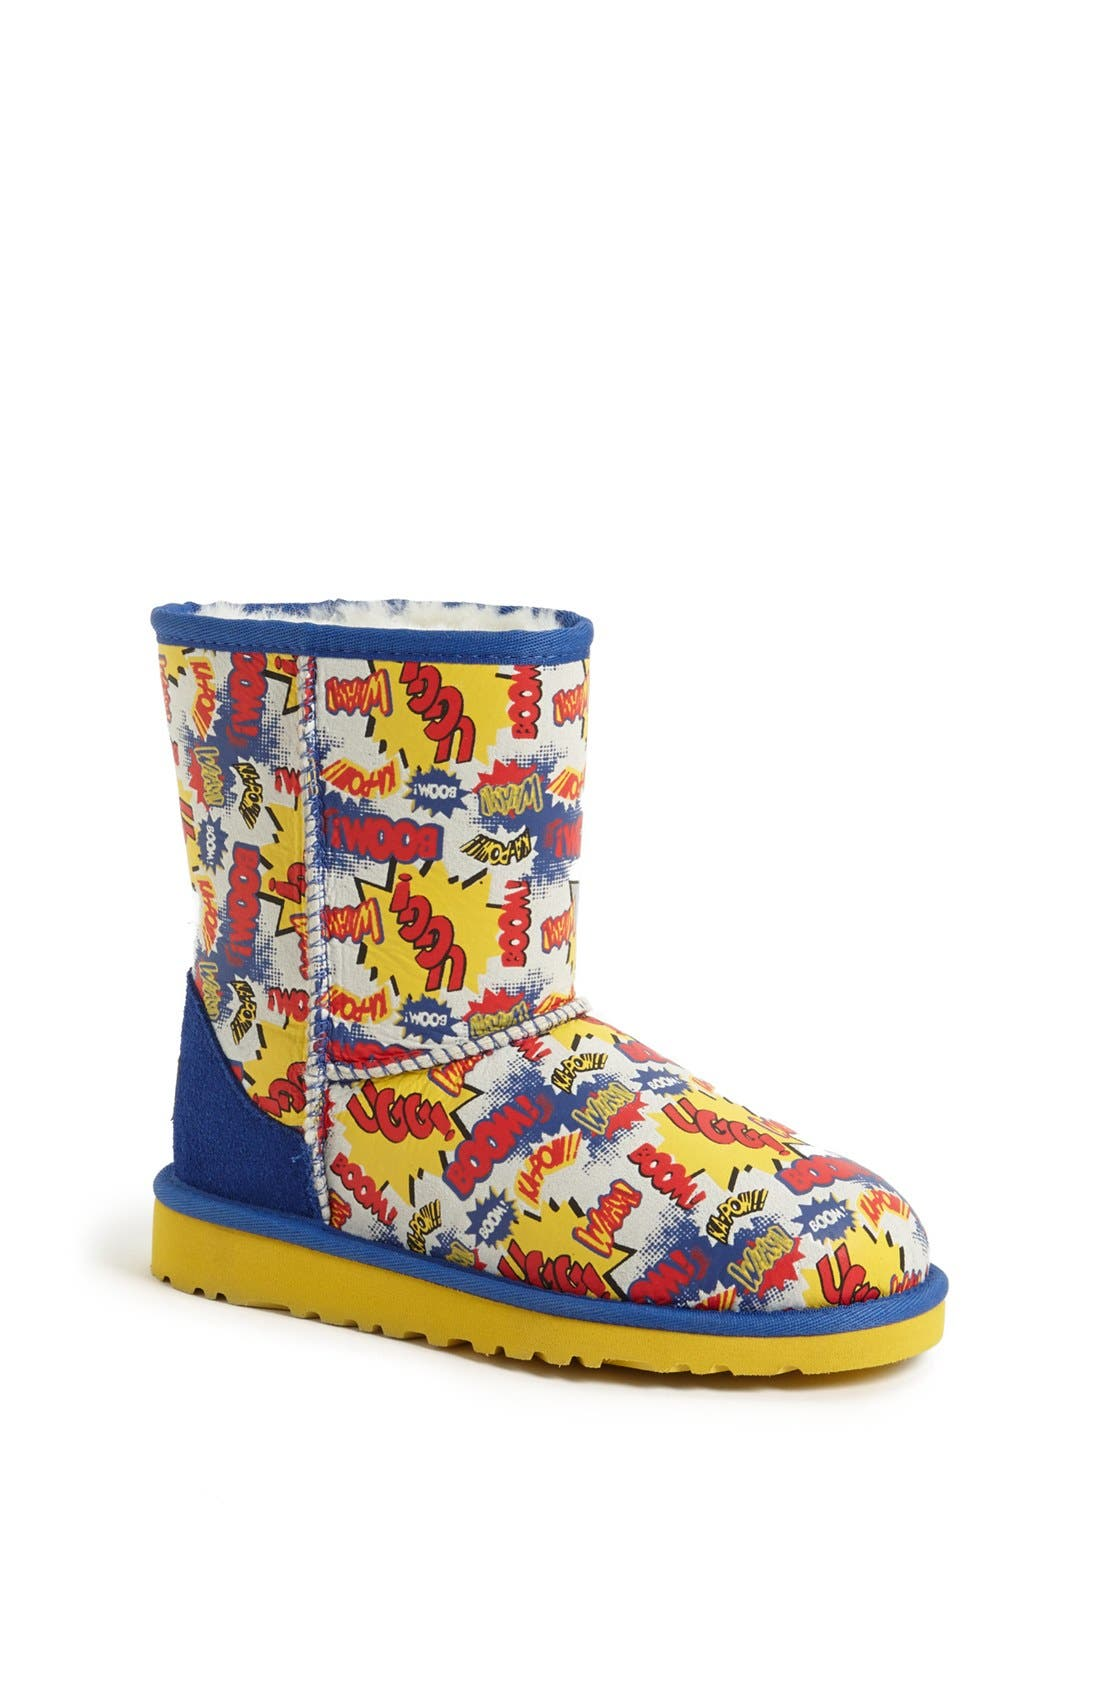 Alternate Image 1 Selected - UGG® Australia 'Classic Short - Comic' Print Boot (Walker, Toddler, Little Kid & Big Kid)